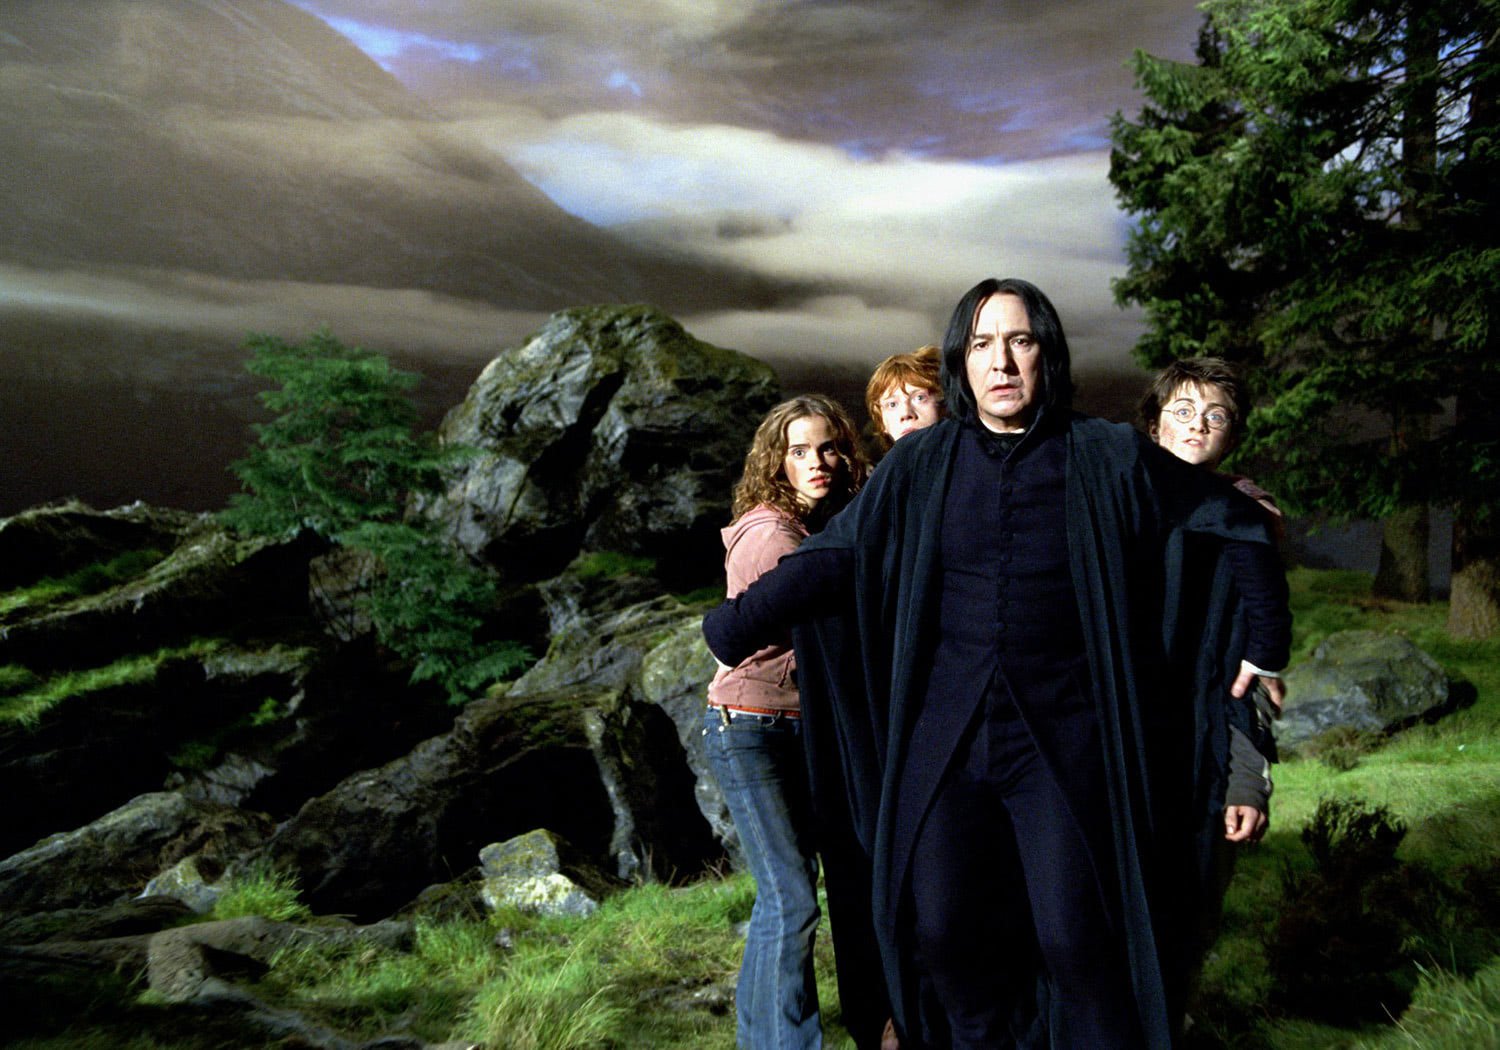 Snape protects the trio